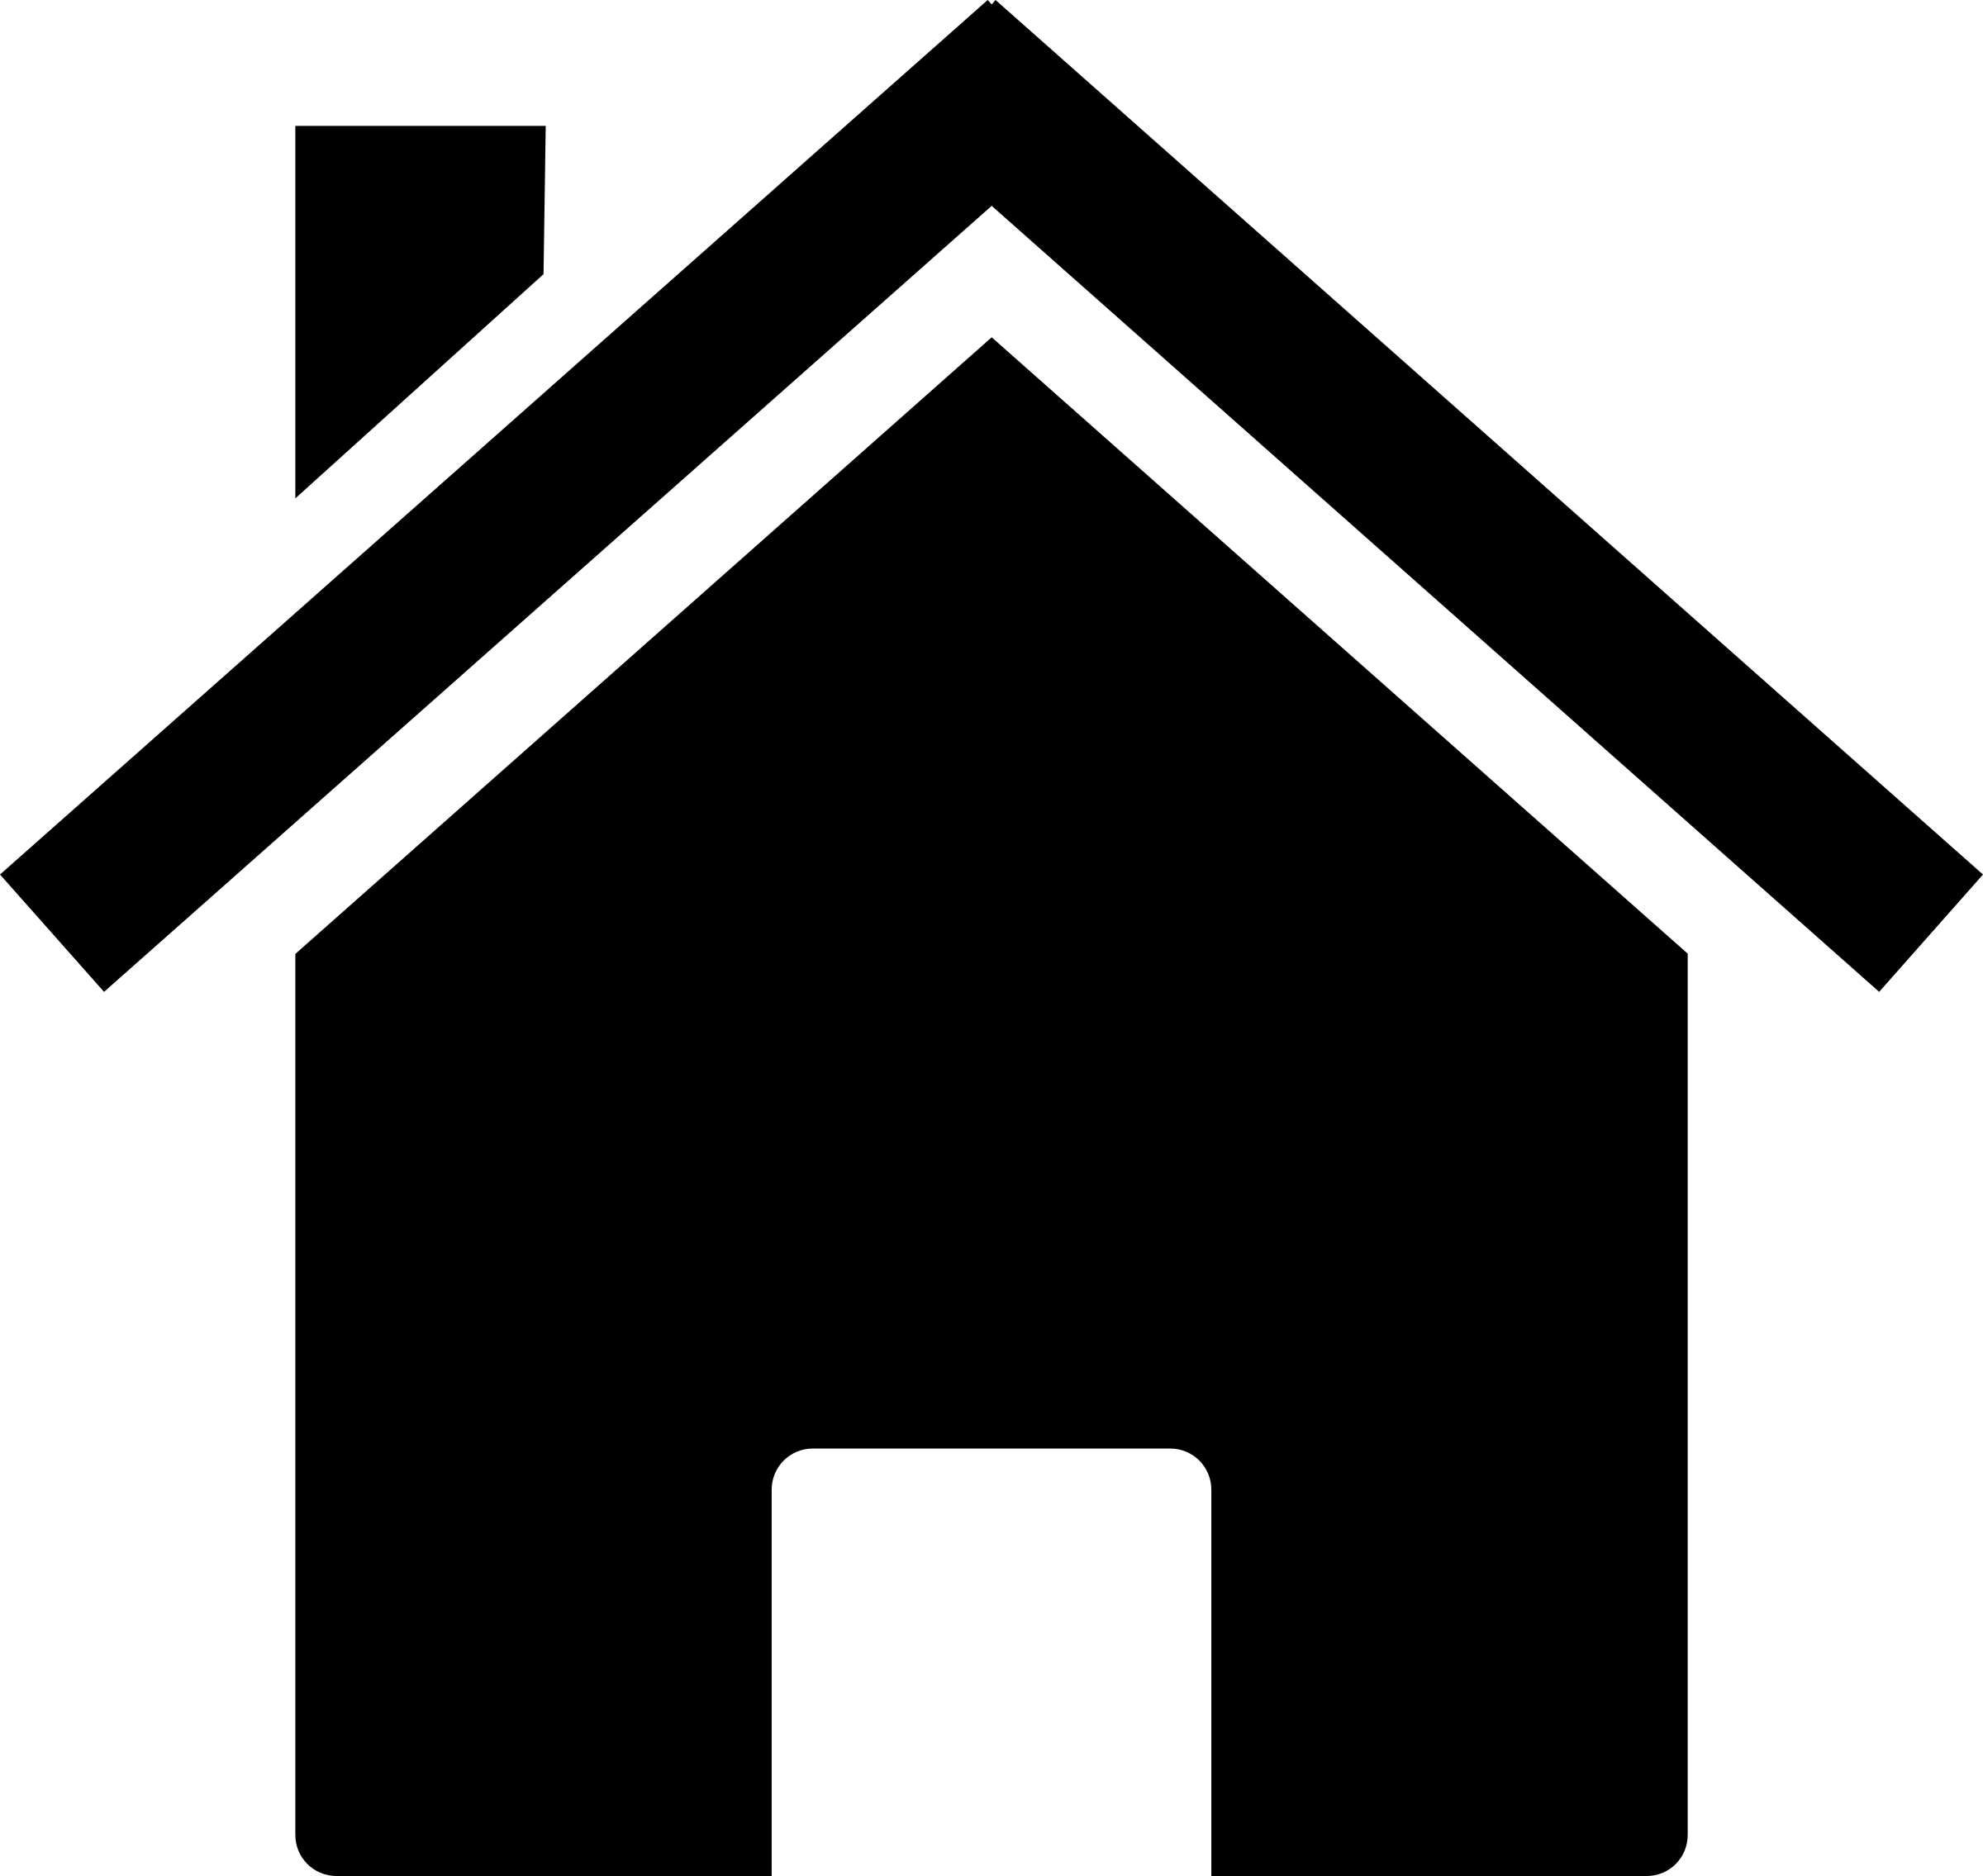 Black home icon png. Chimney transparent stickpng